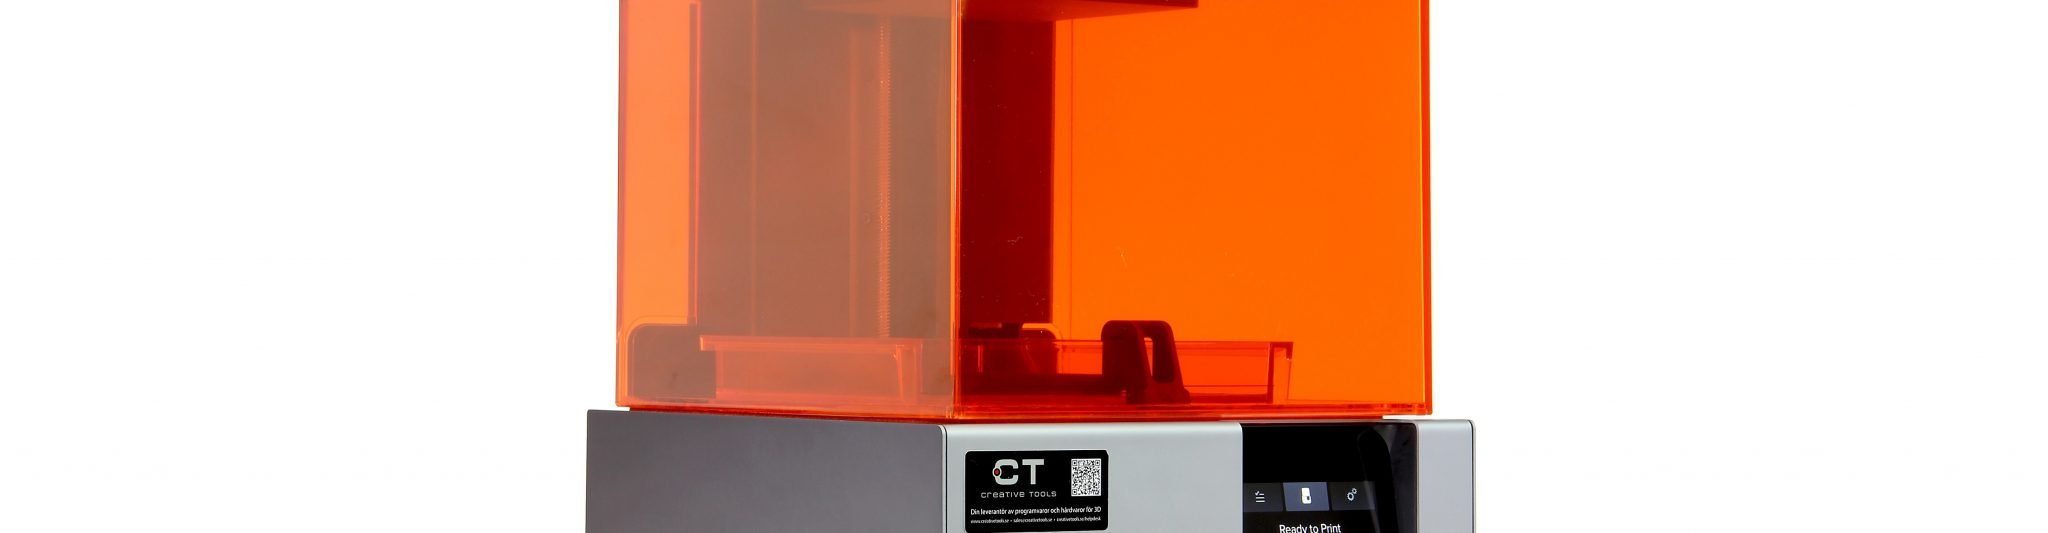 H.C. Starck's AMPERPRINT: a new tool for metal 3D printing